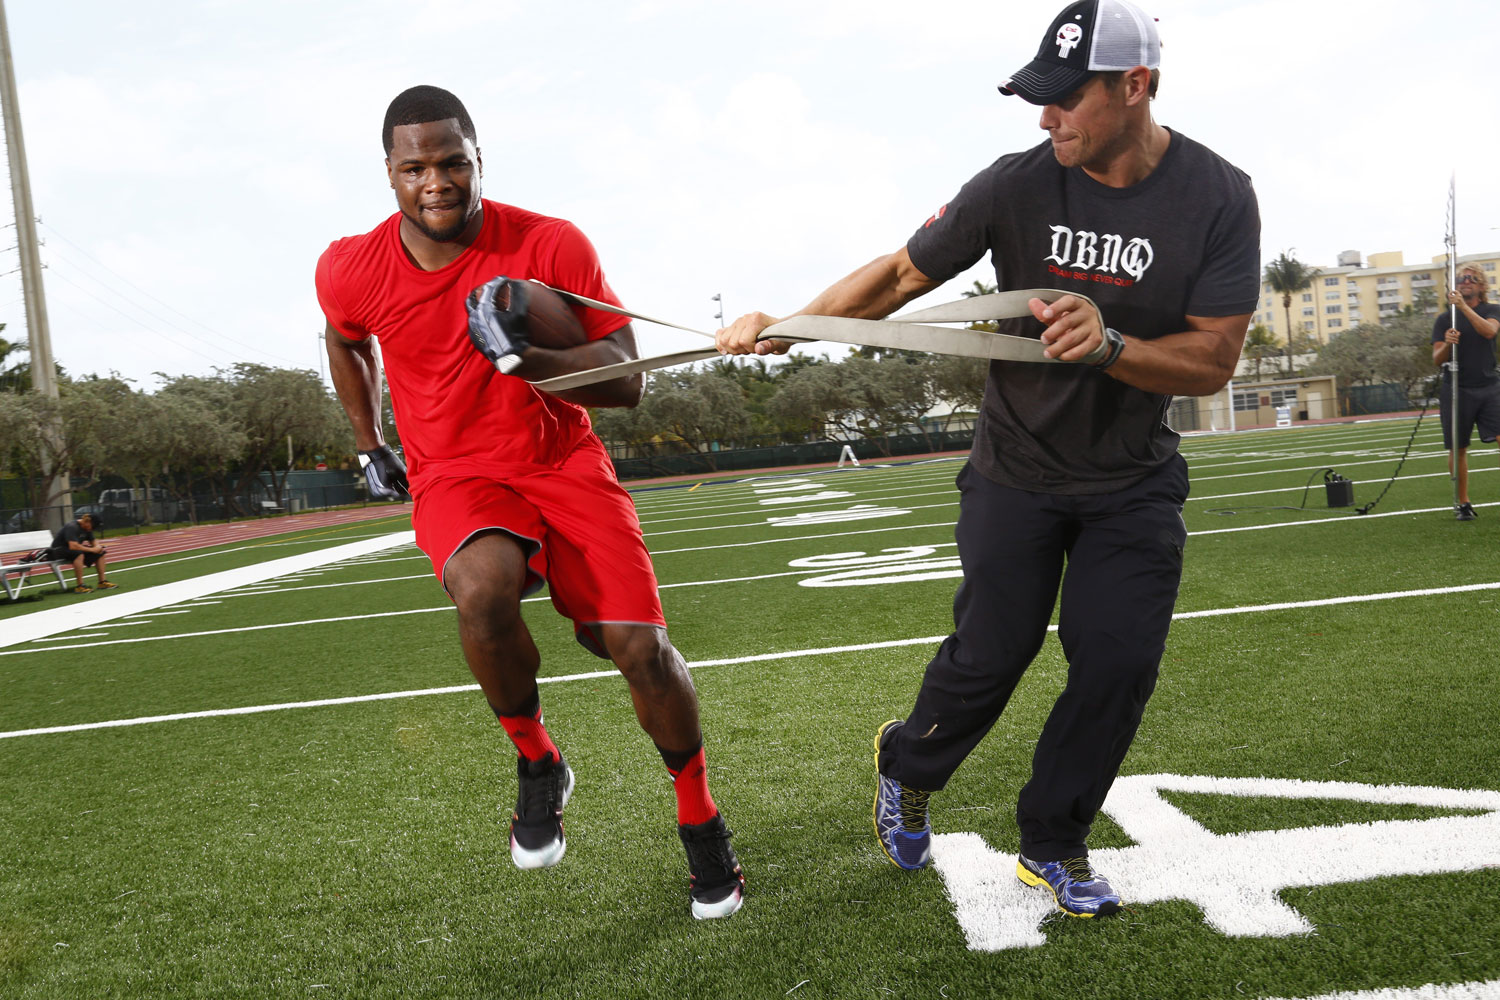 Ohio State running back Carlos Hyde works on improving his 40 time with a trainer in Tampa, FL.